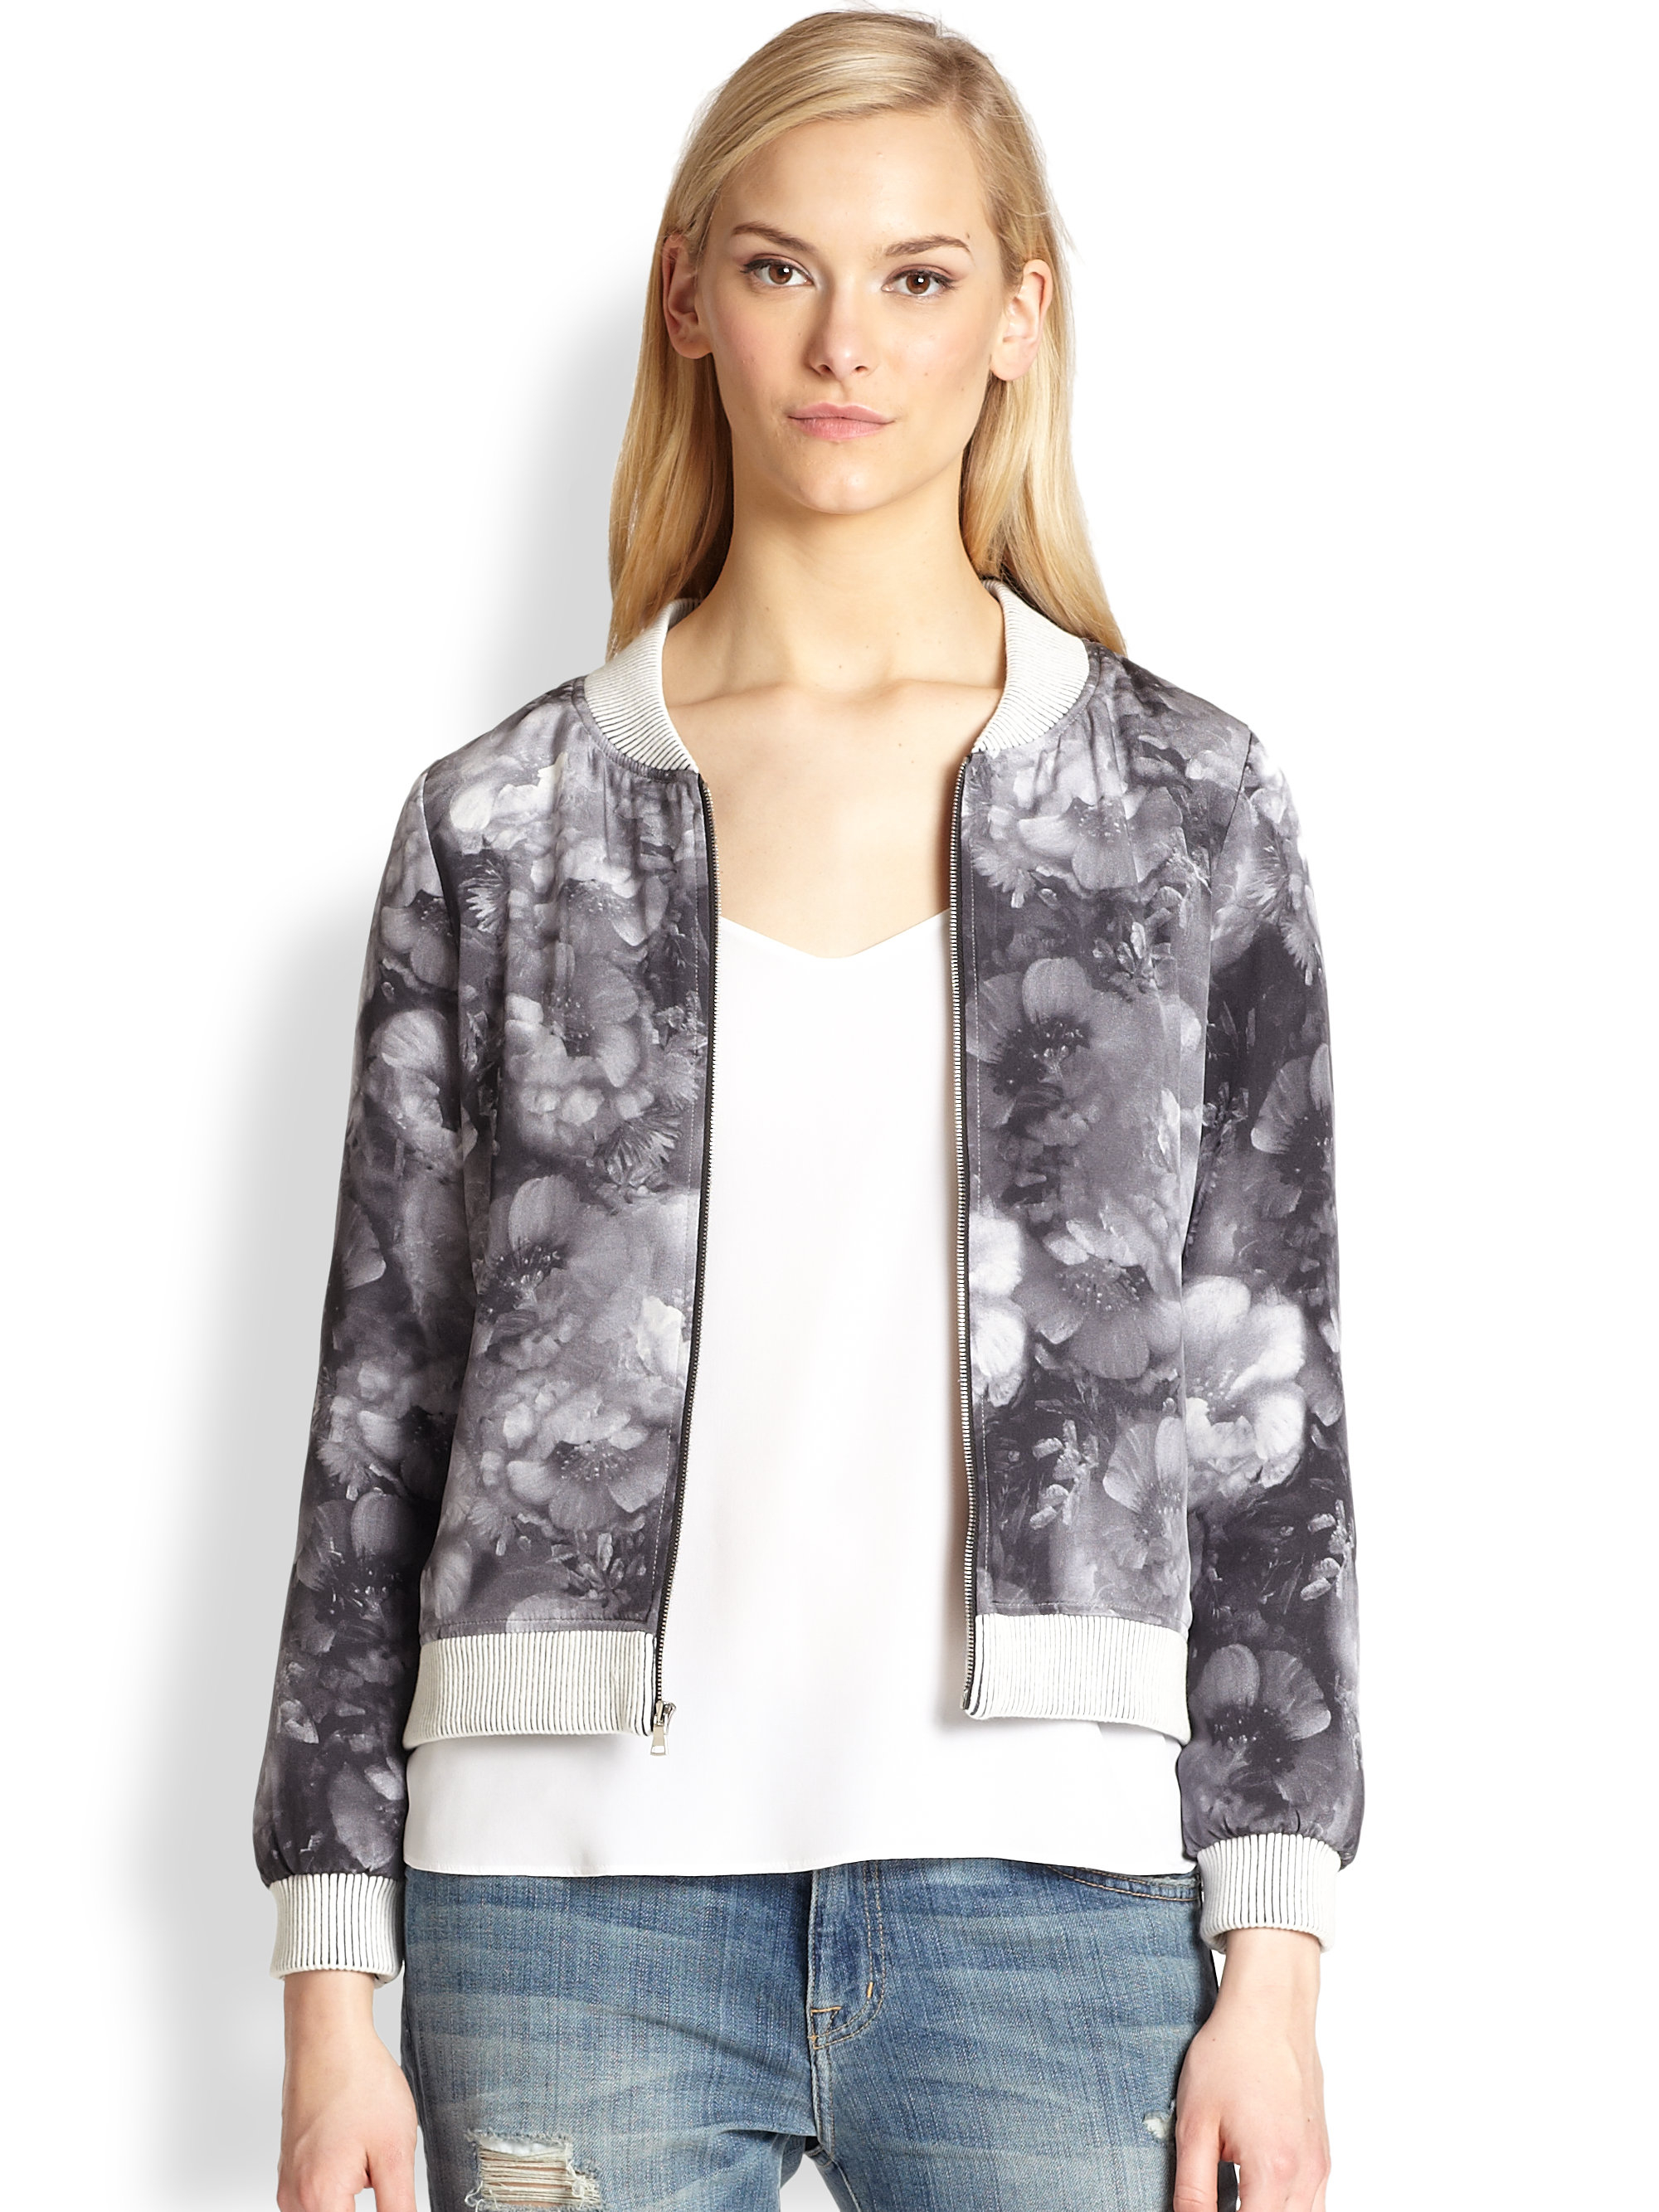 Lyst - Townsen Lady Floral Silk Bomber Jacket in Black